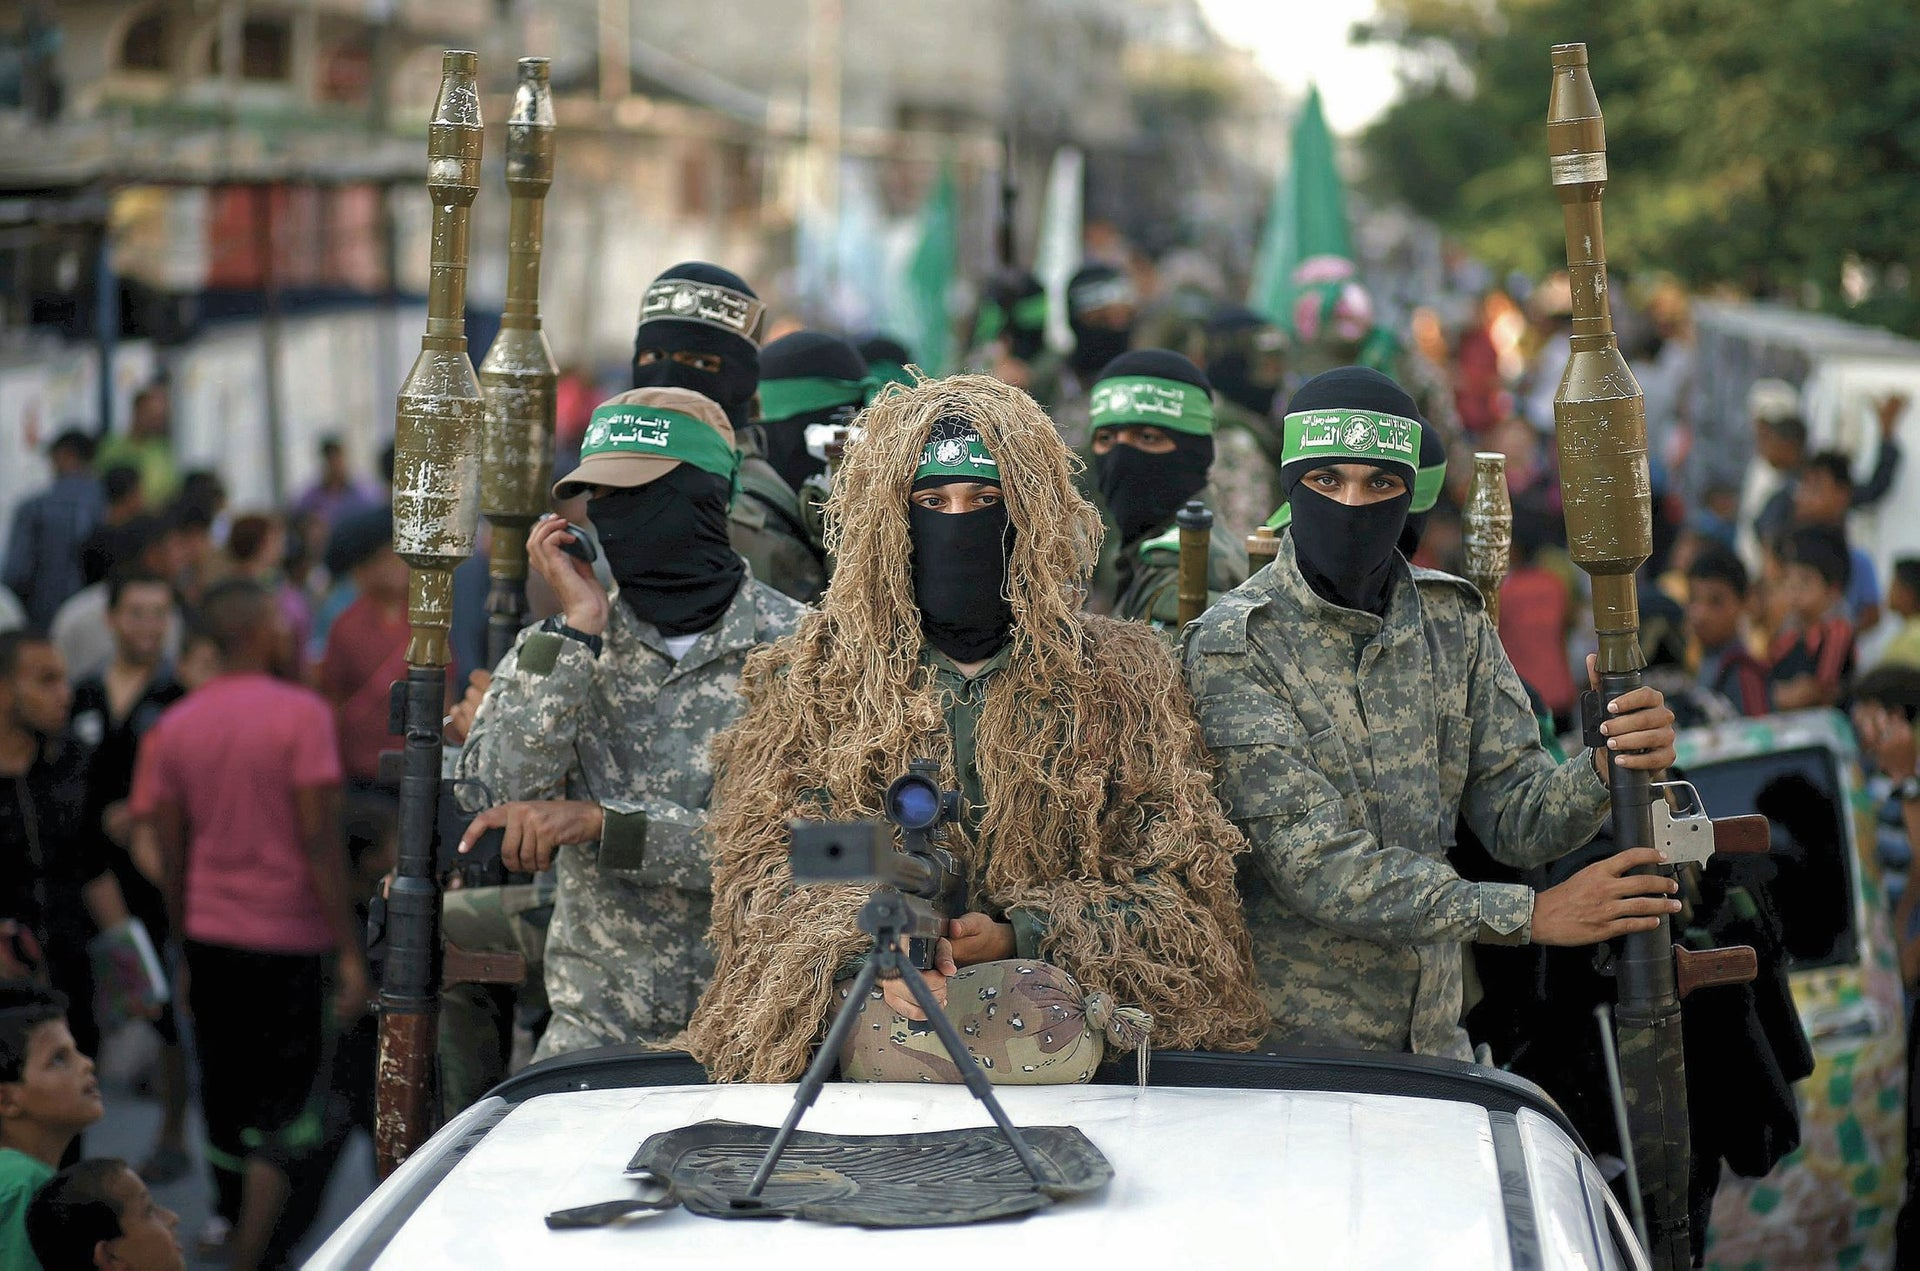 Hamas militants take part in a military parade in Gaza.